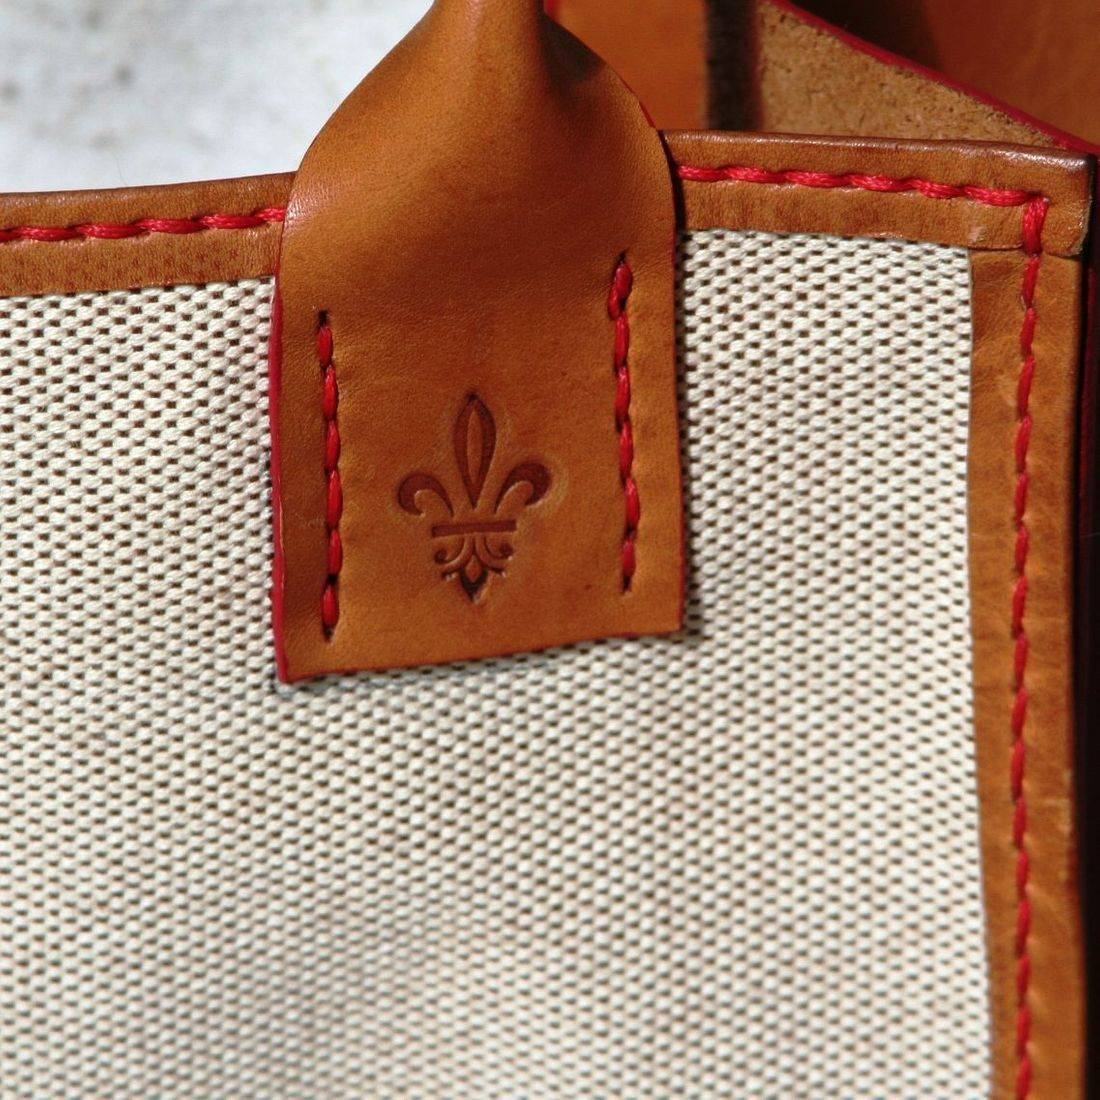 Handcrafted leather, Florentine artisan, leather and canvas bag, handsewn, vegetable tanned leather